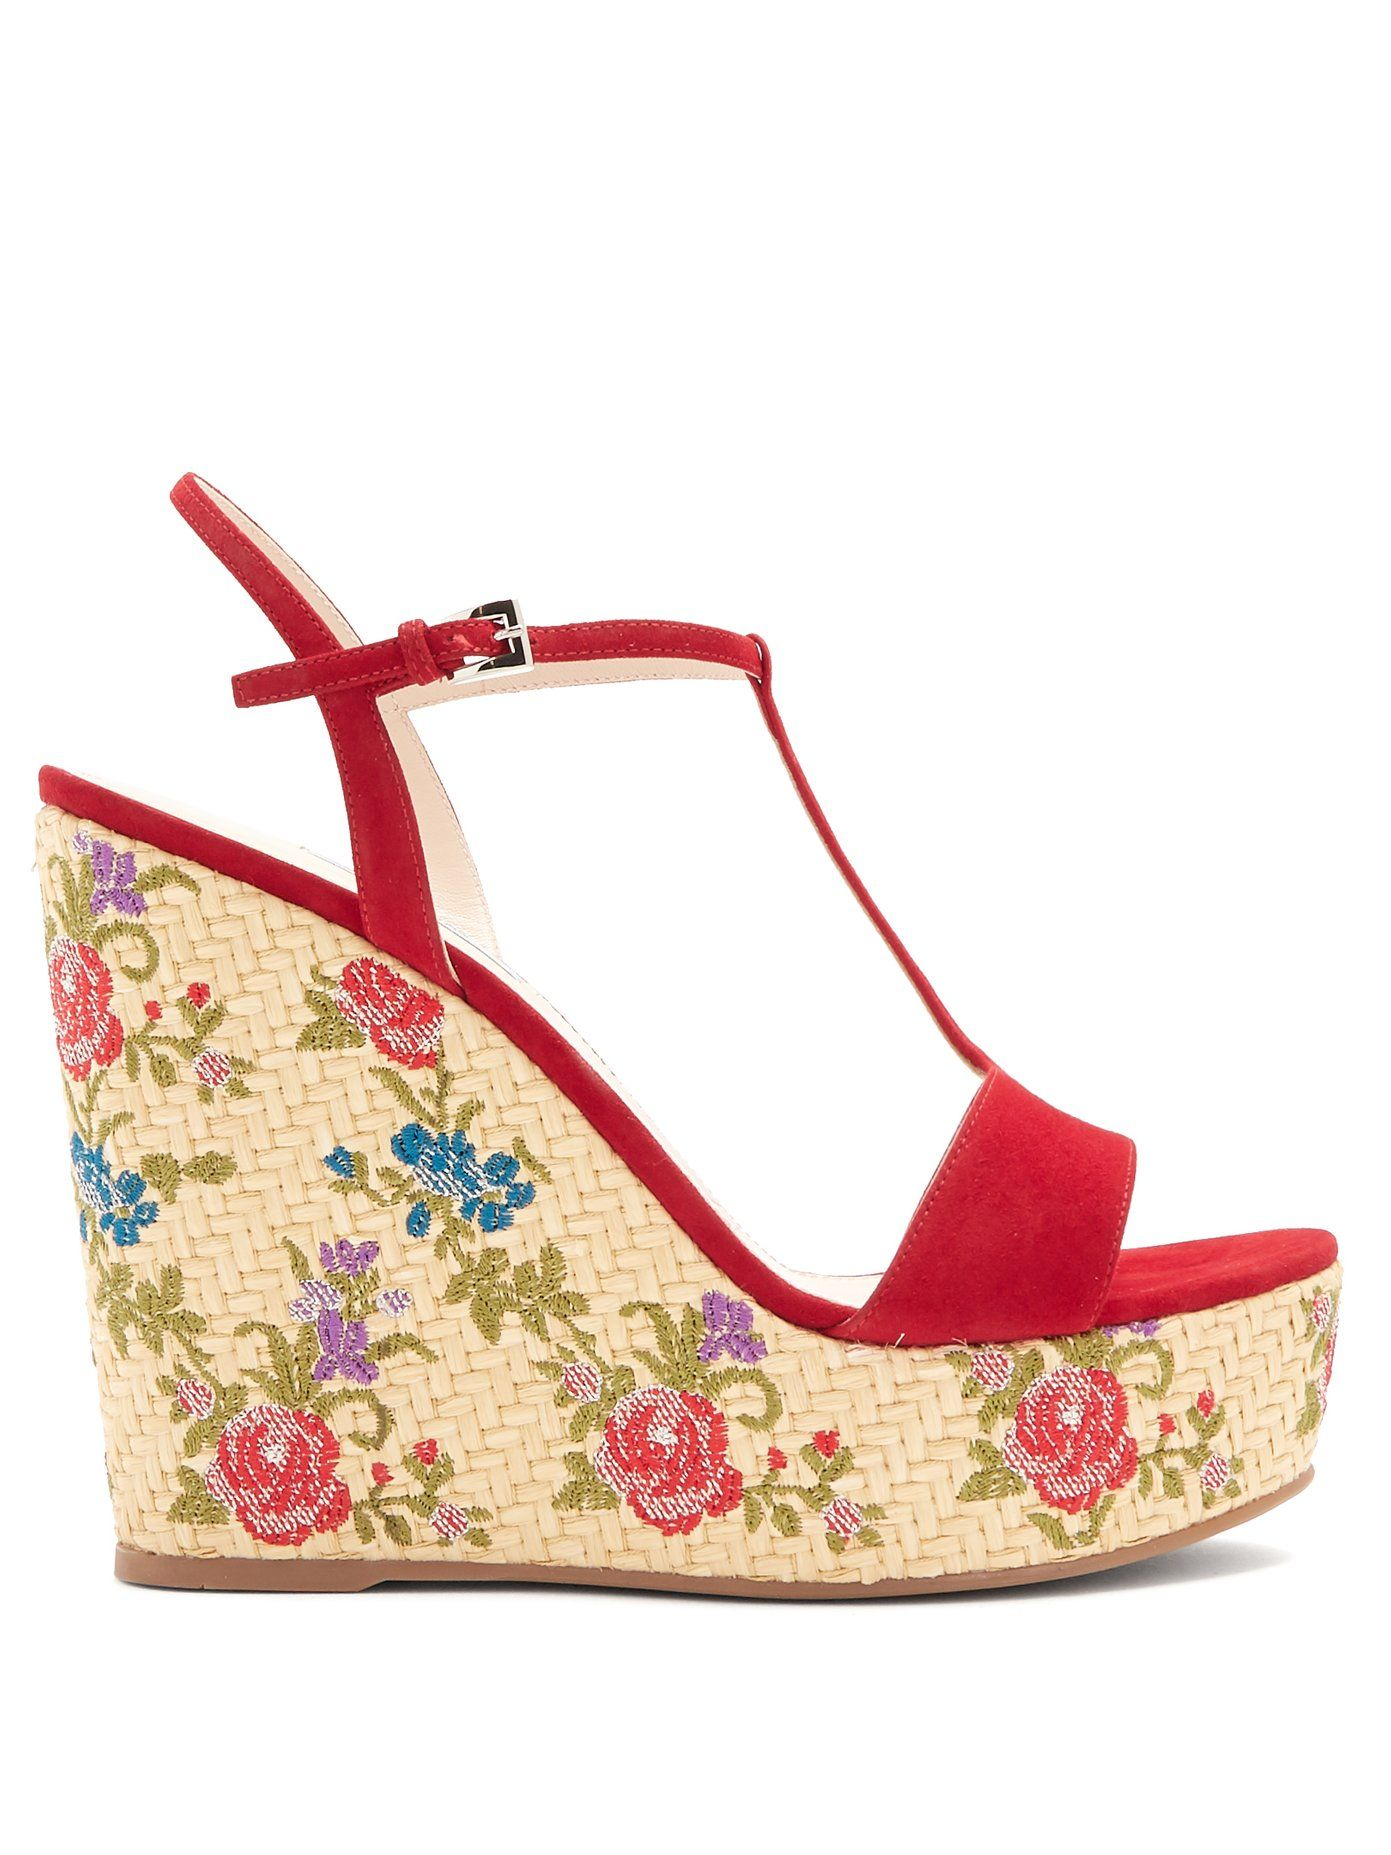 53cfd9483f94 Floral-embroidered suede wedge sandals